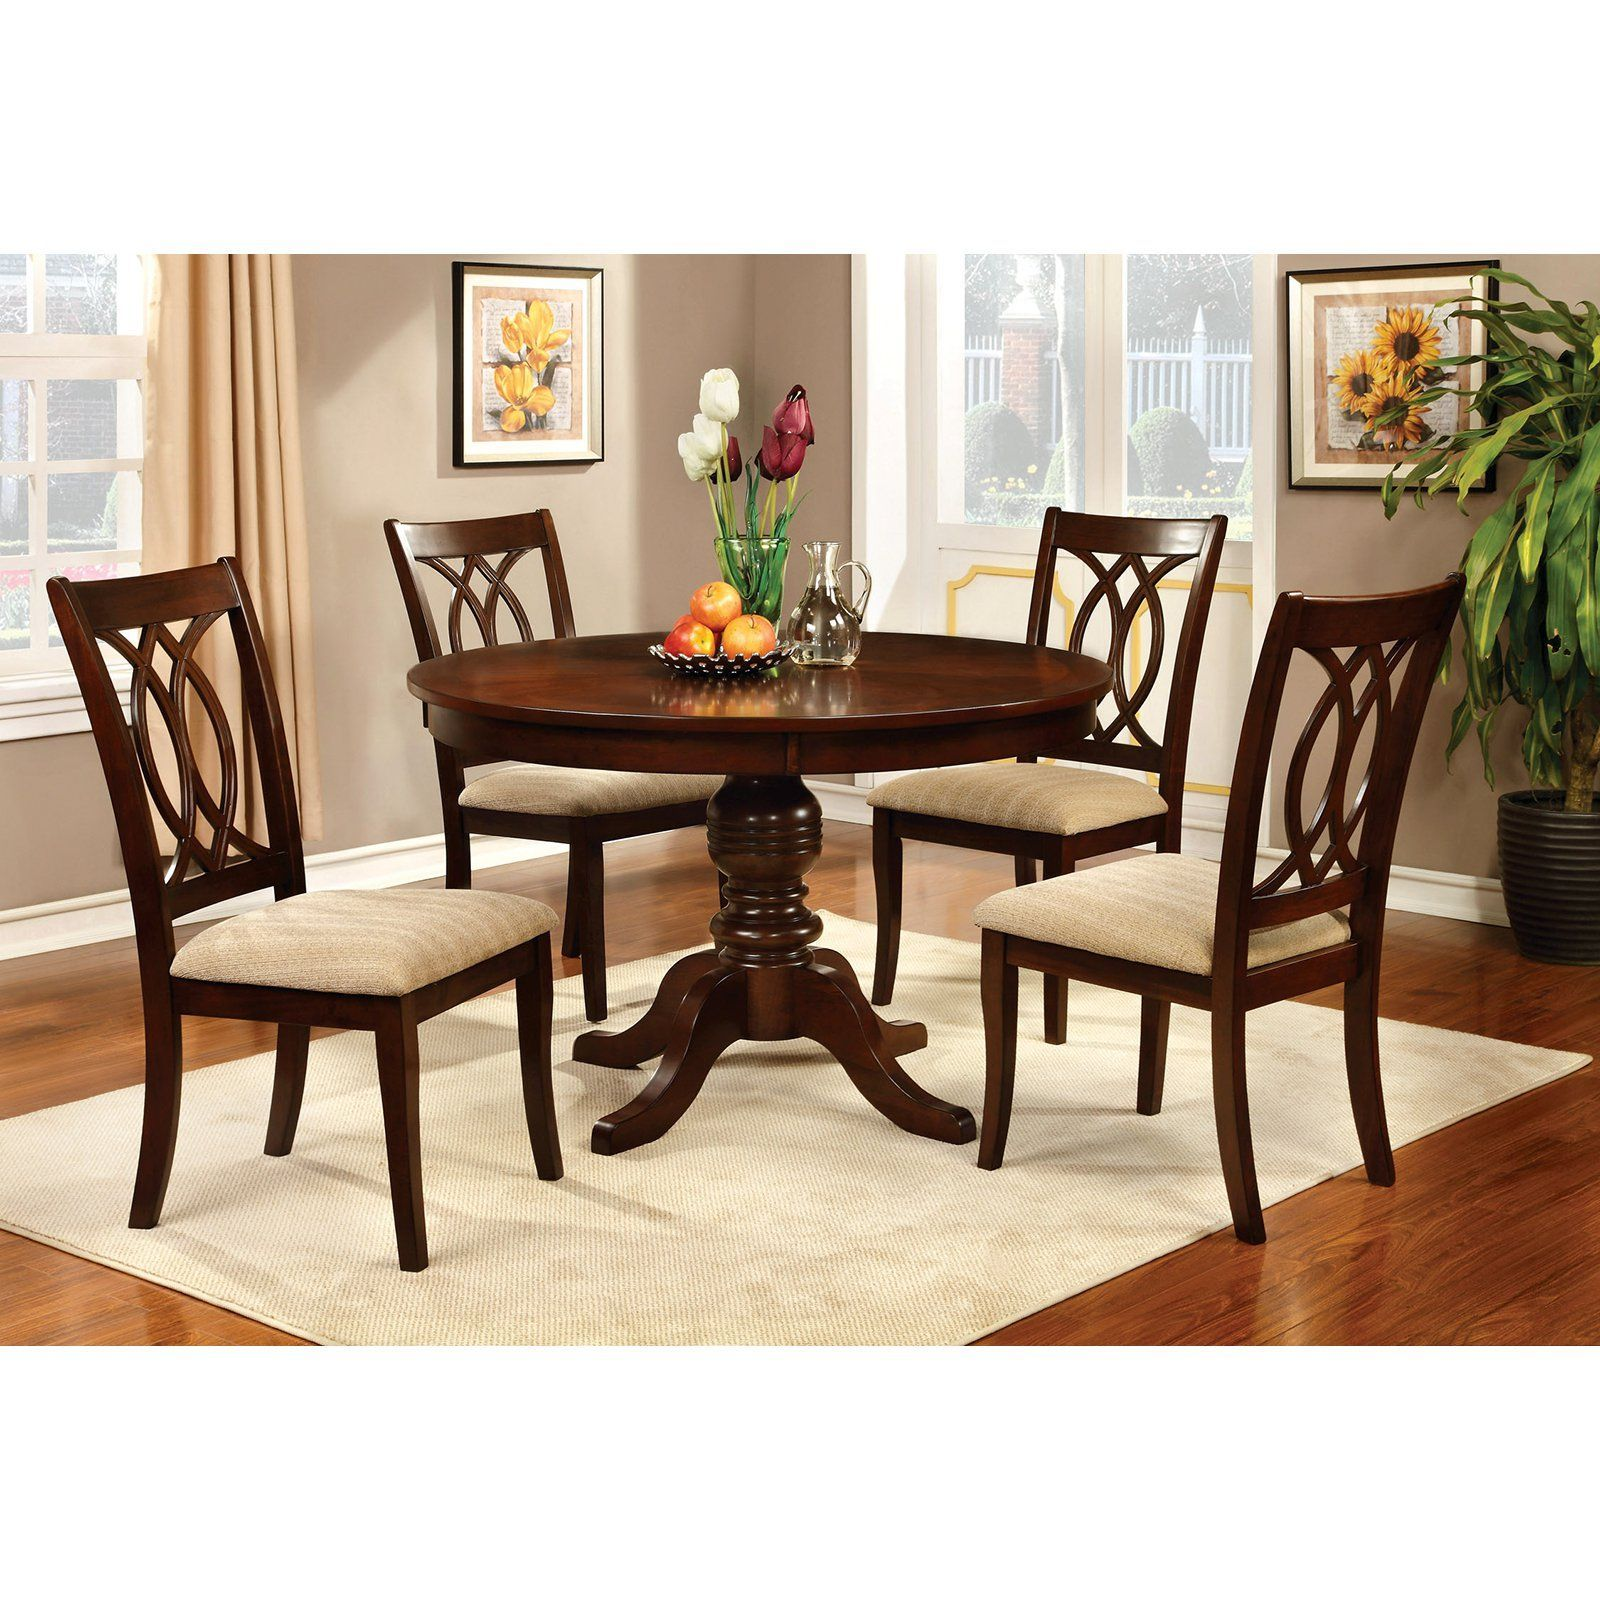 Furniture Of America Frescina Round Dining Table From Hayneedle